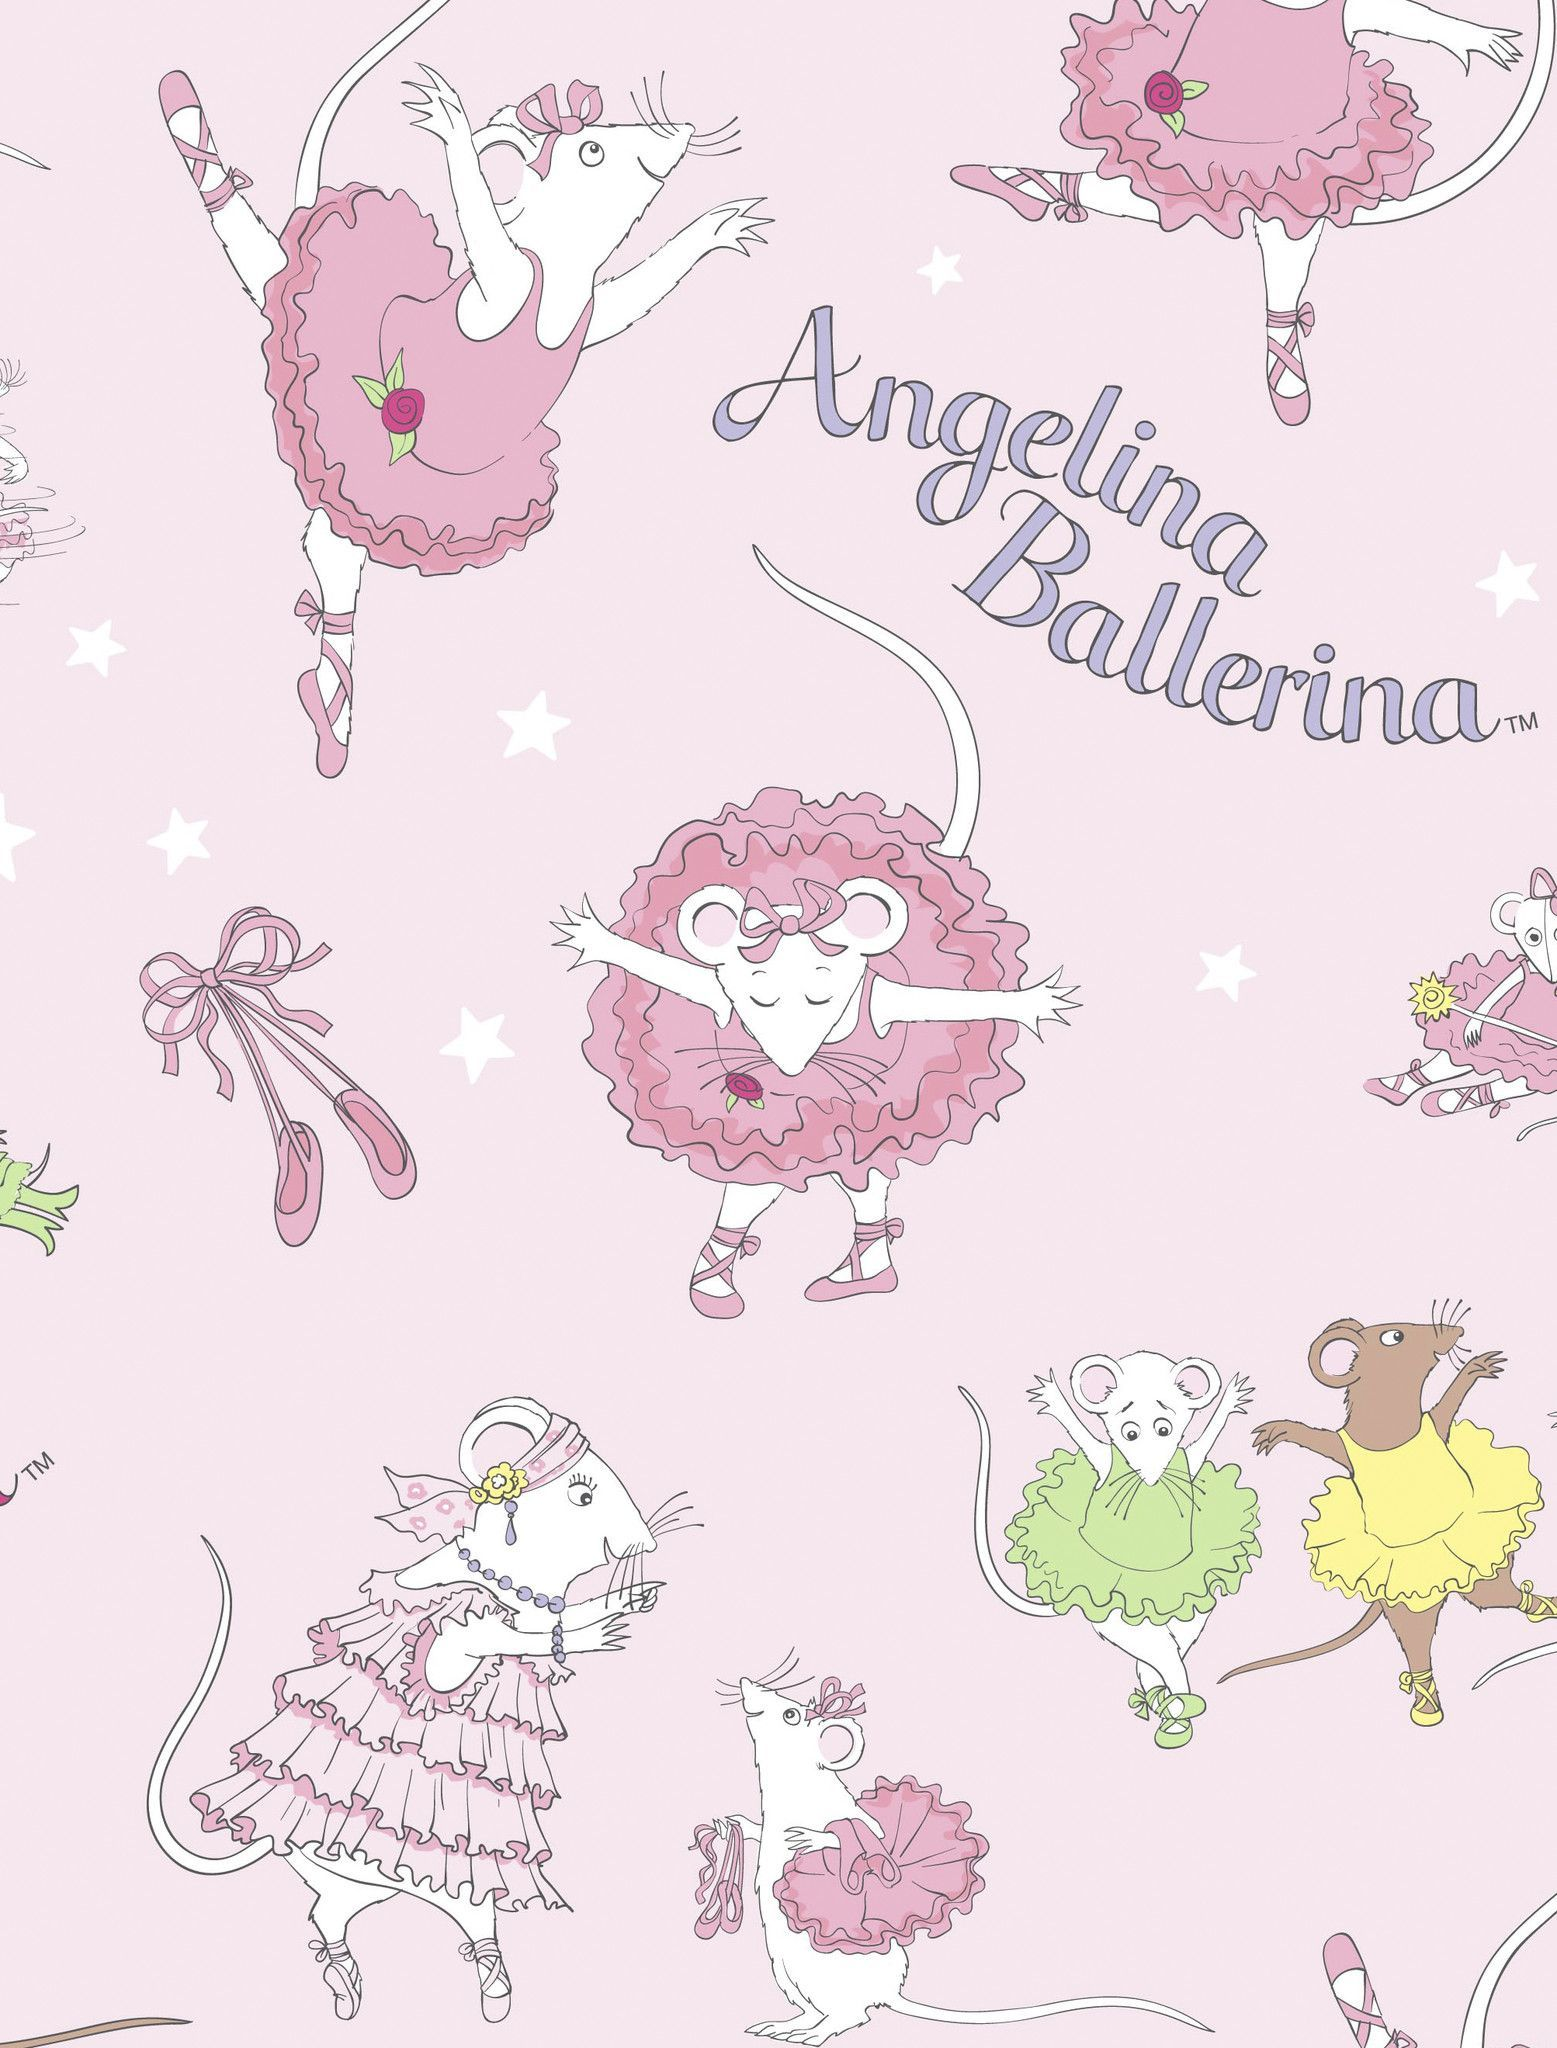 100 Cotton Pajamas Made in the U.S. PJ's design is based